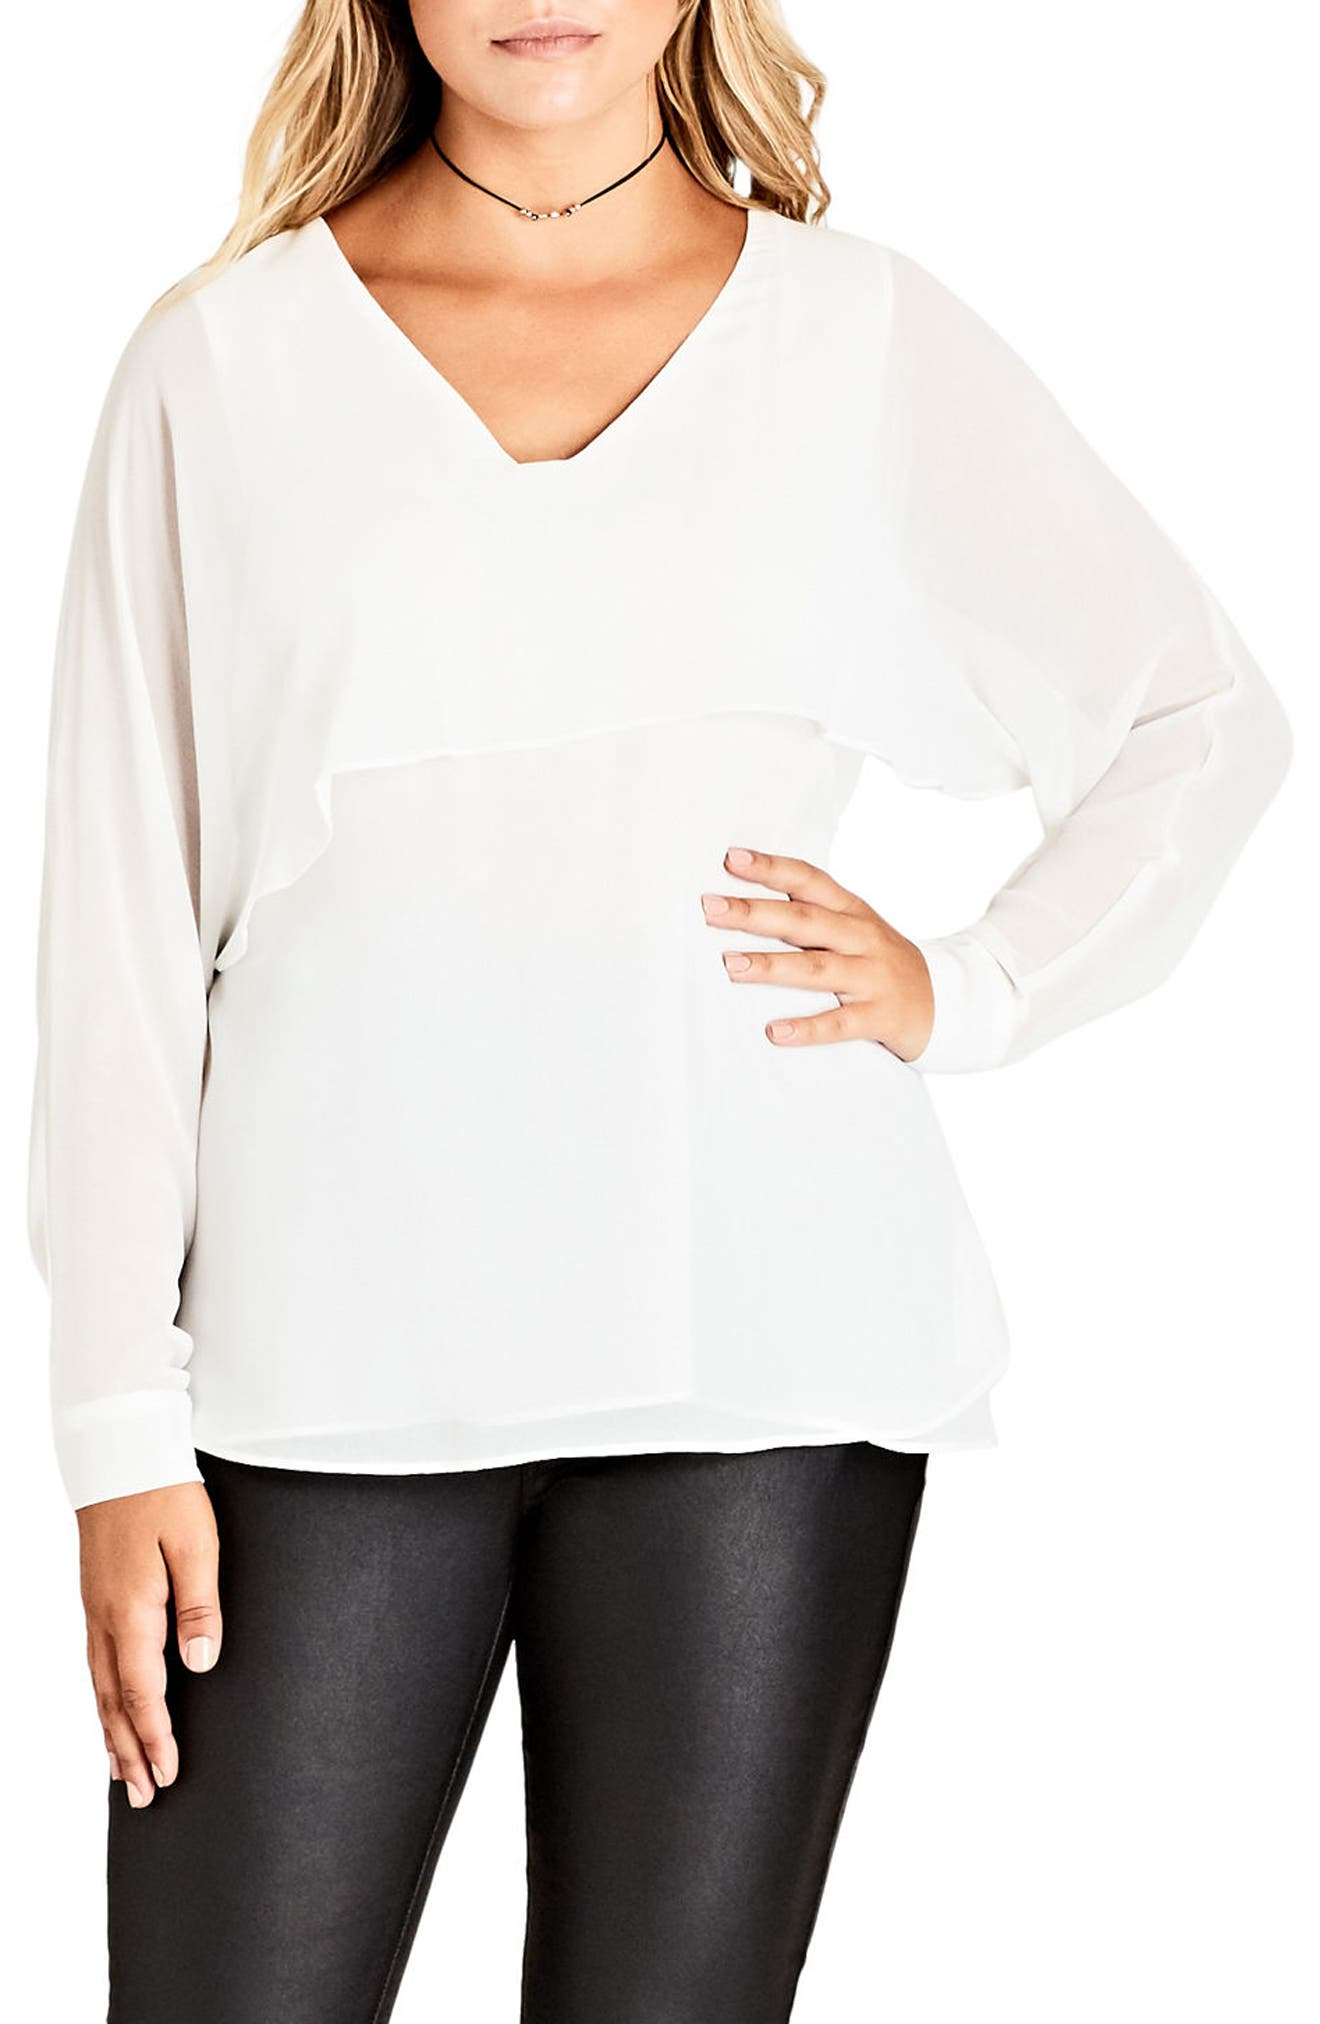 Alternate Image 1 Selected - City Chic Cape Top (Plus Size)